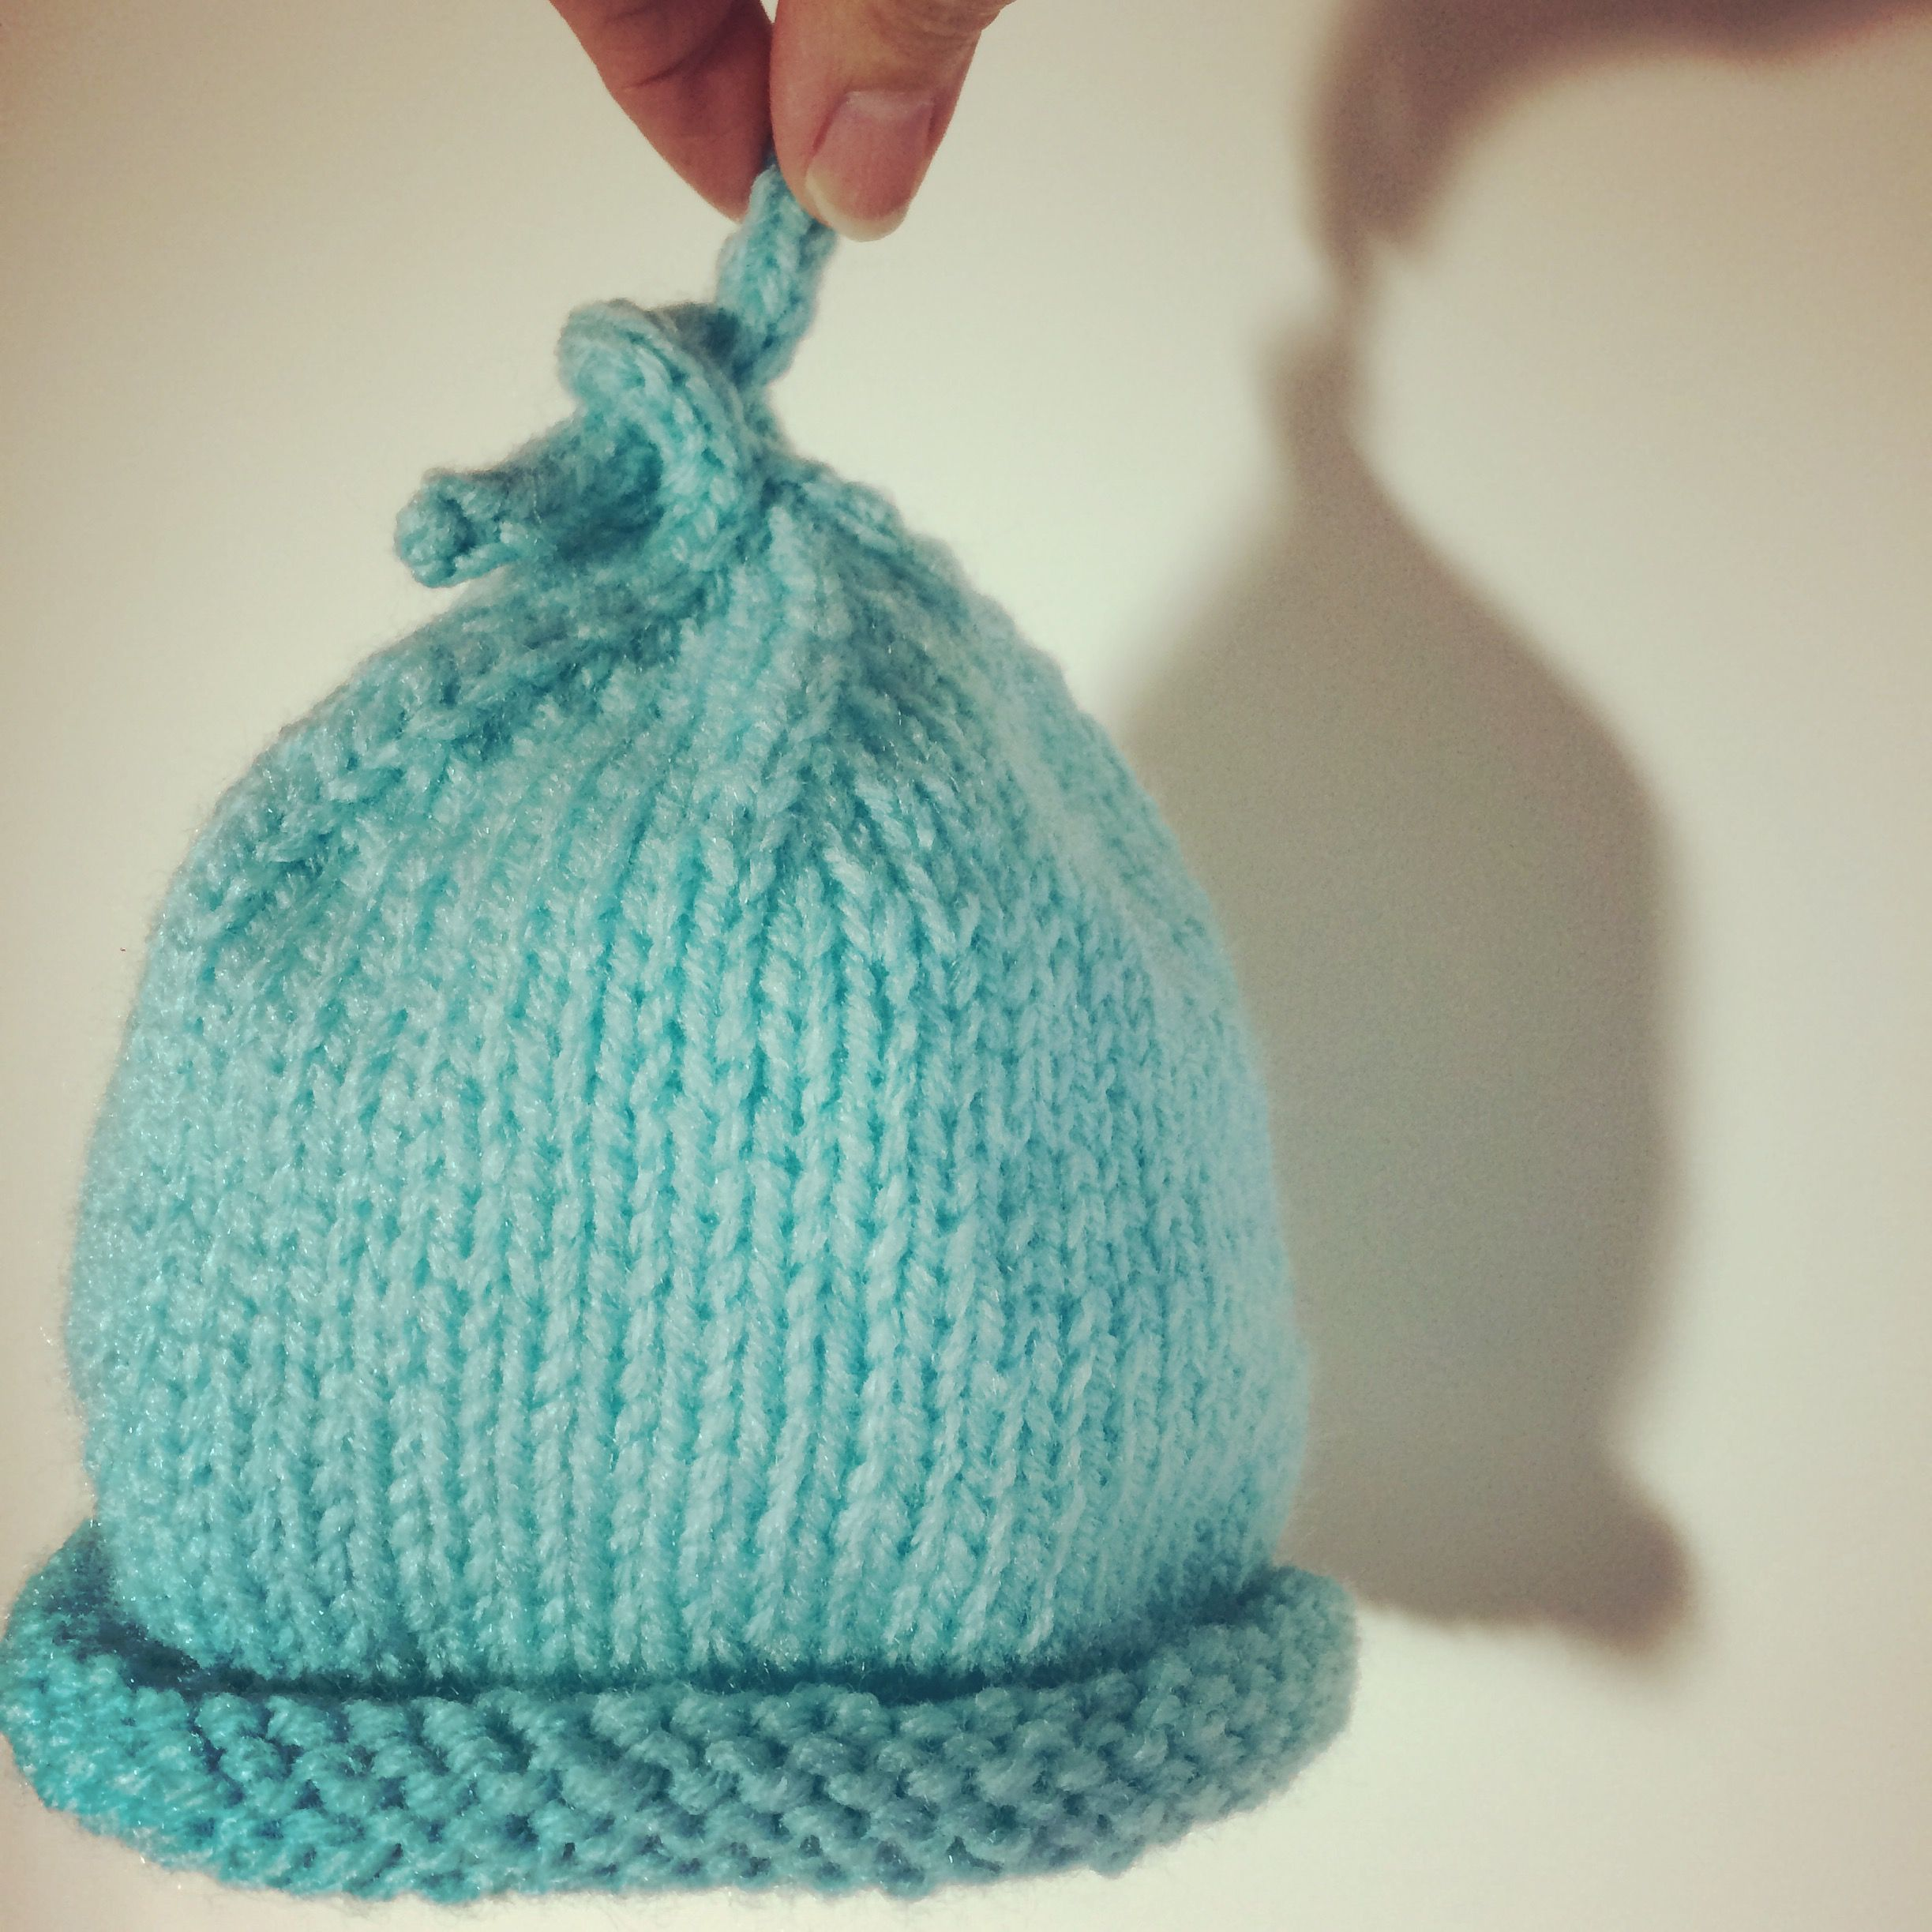 Knot-a-hat hand-knitted baby hat